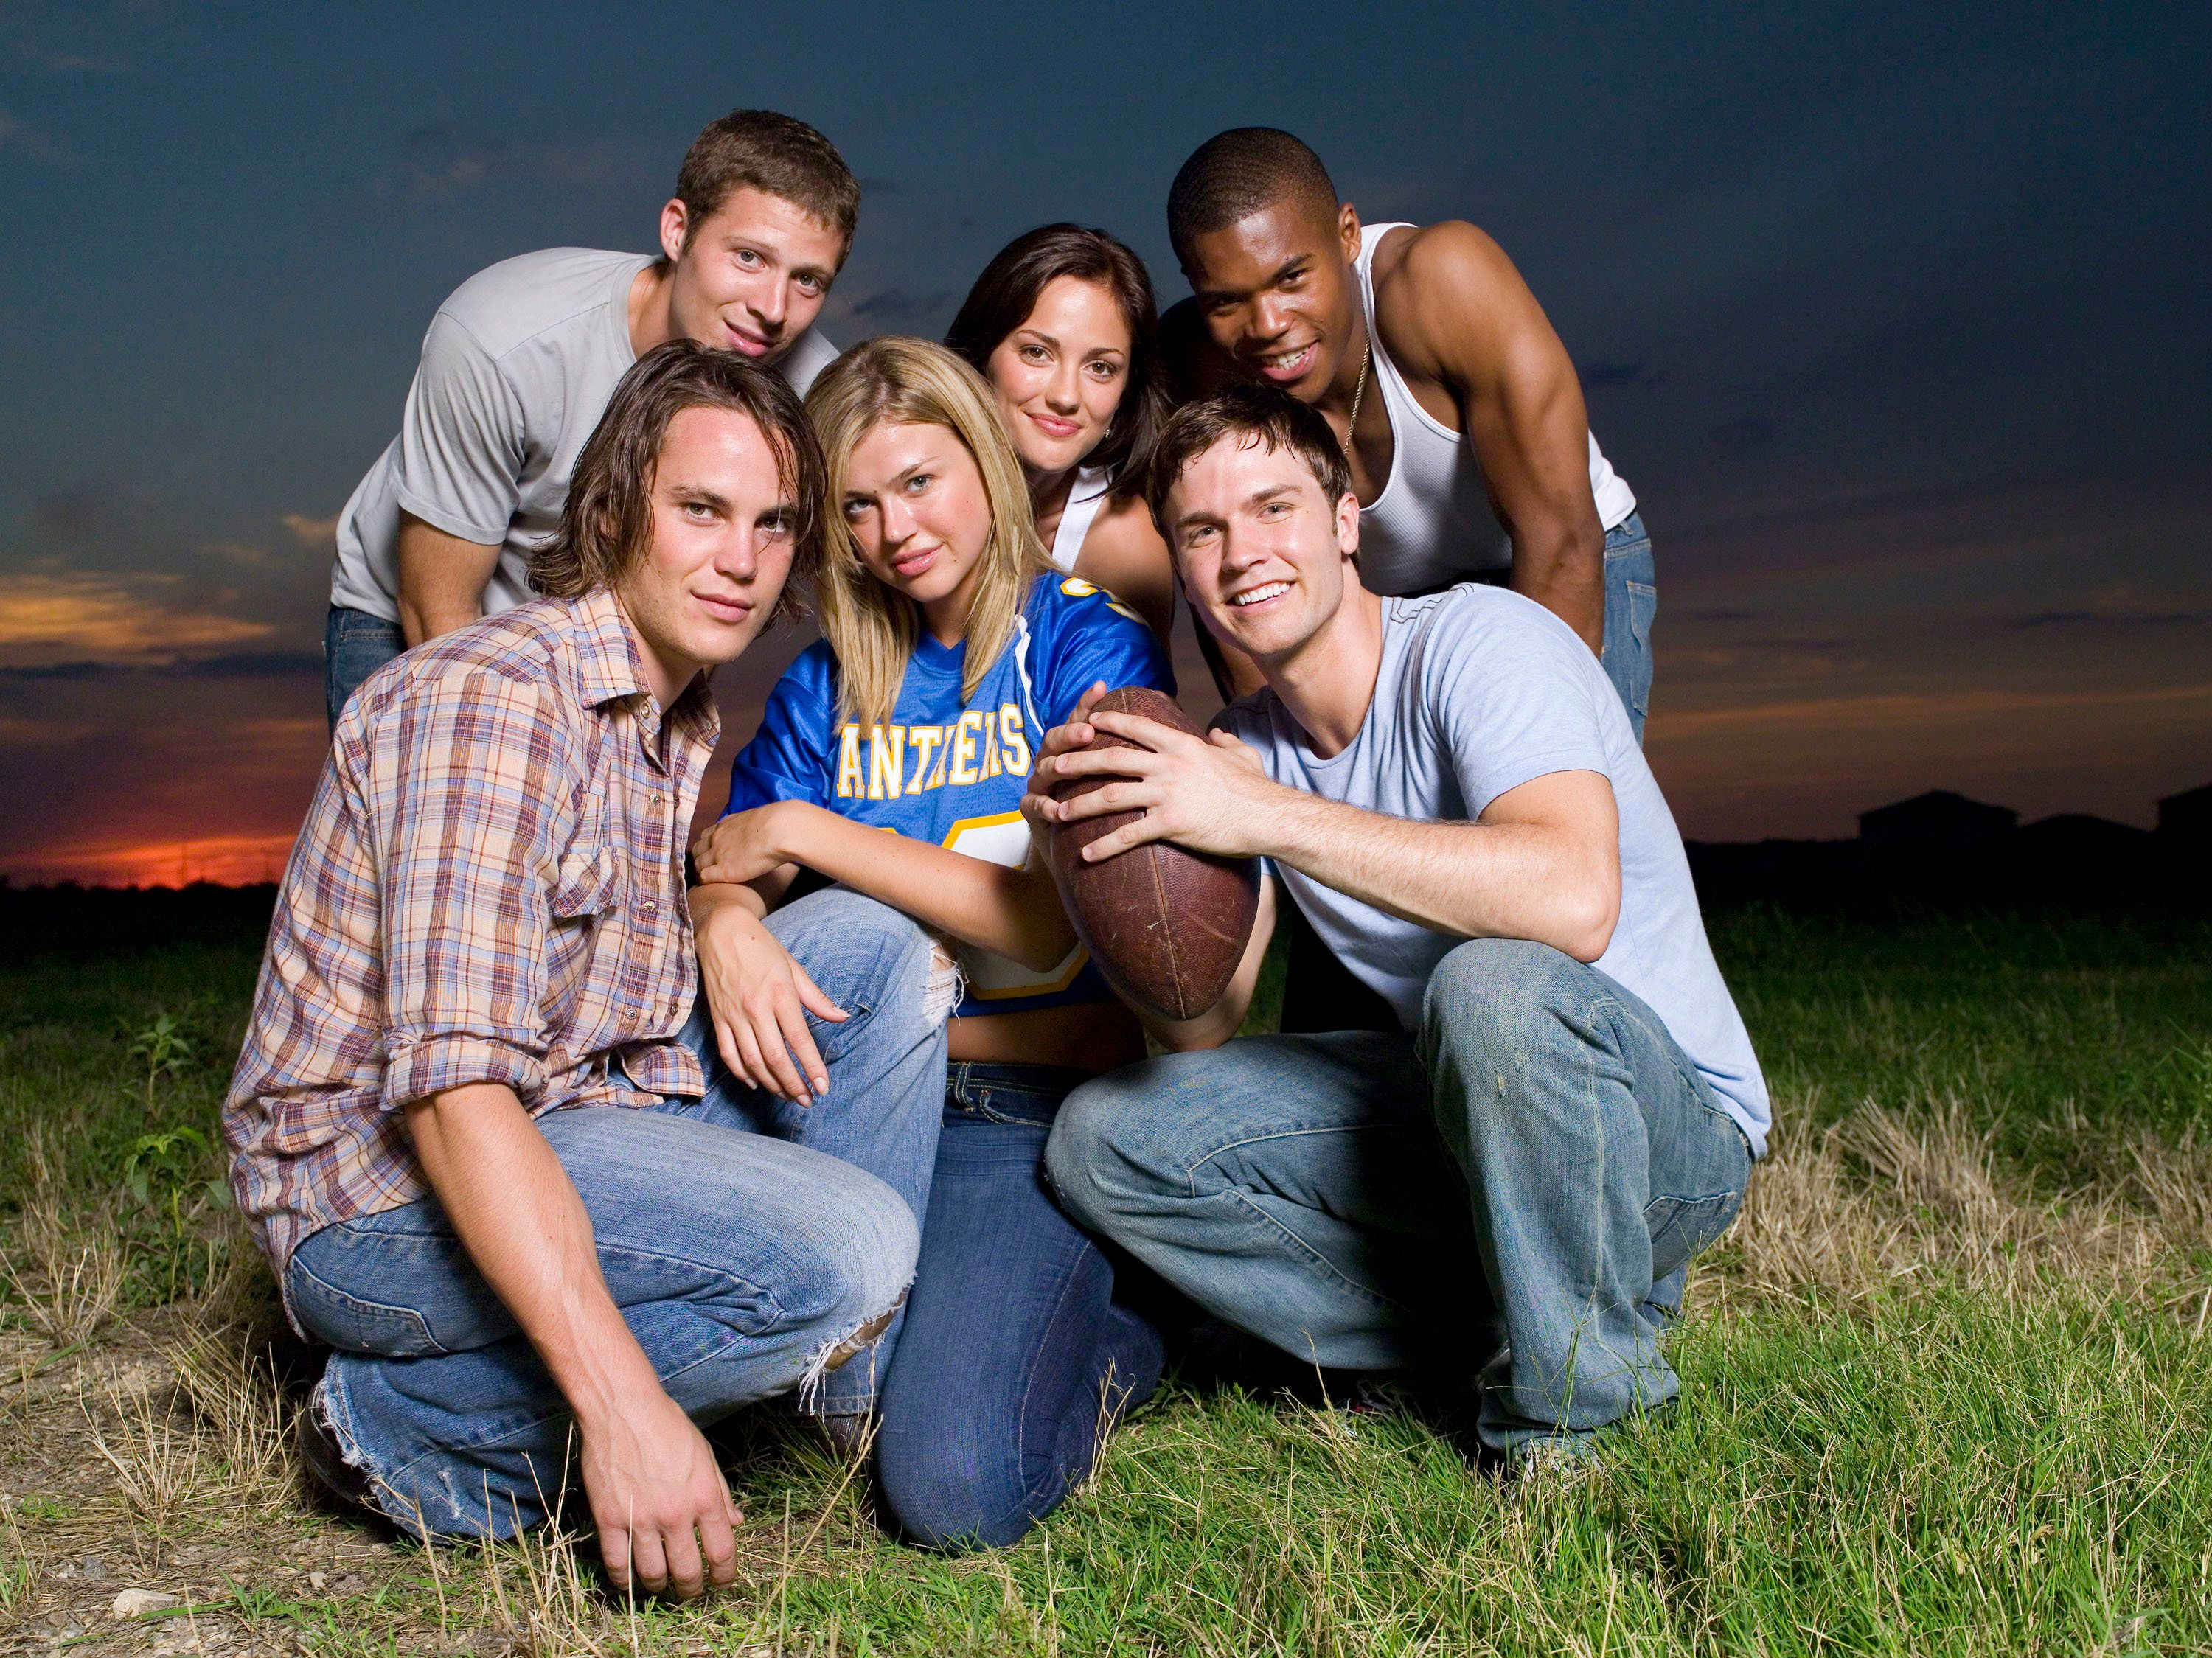 Friday Night Lights Season 4 Cast